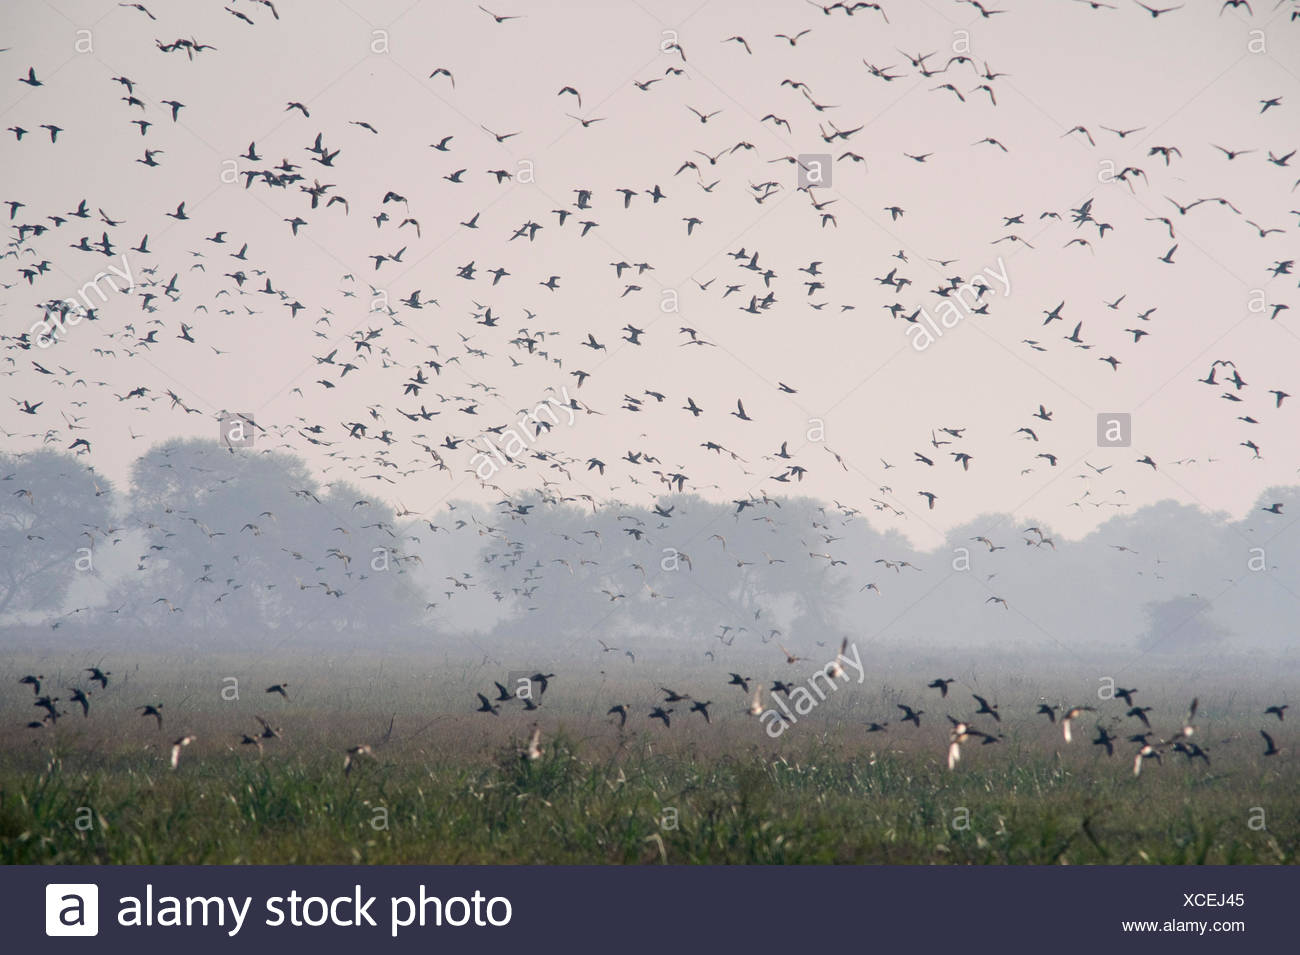 Ducks in flight, flock flying to roost for the night, Keoladeo National Park or Keoladeo Ghana National Park formerly known as the Bharatpur Bird Sanc - Stock Image